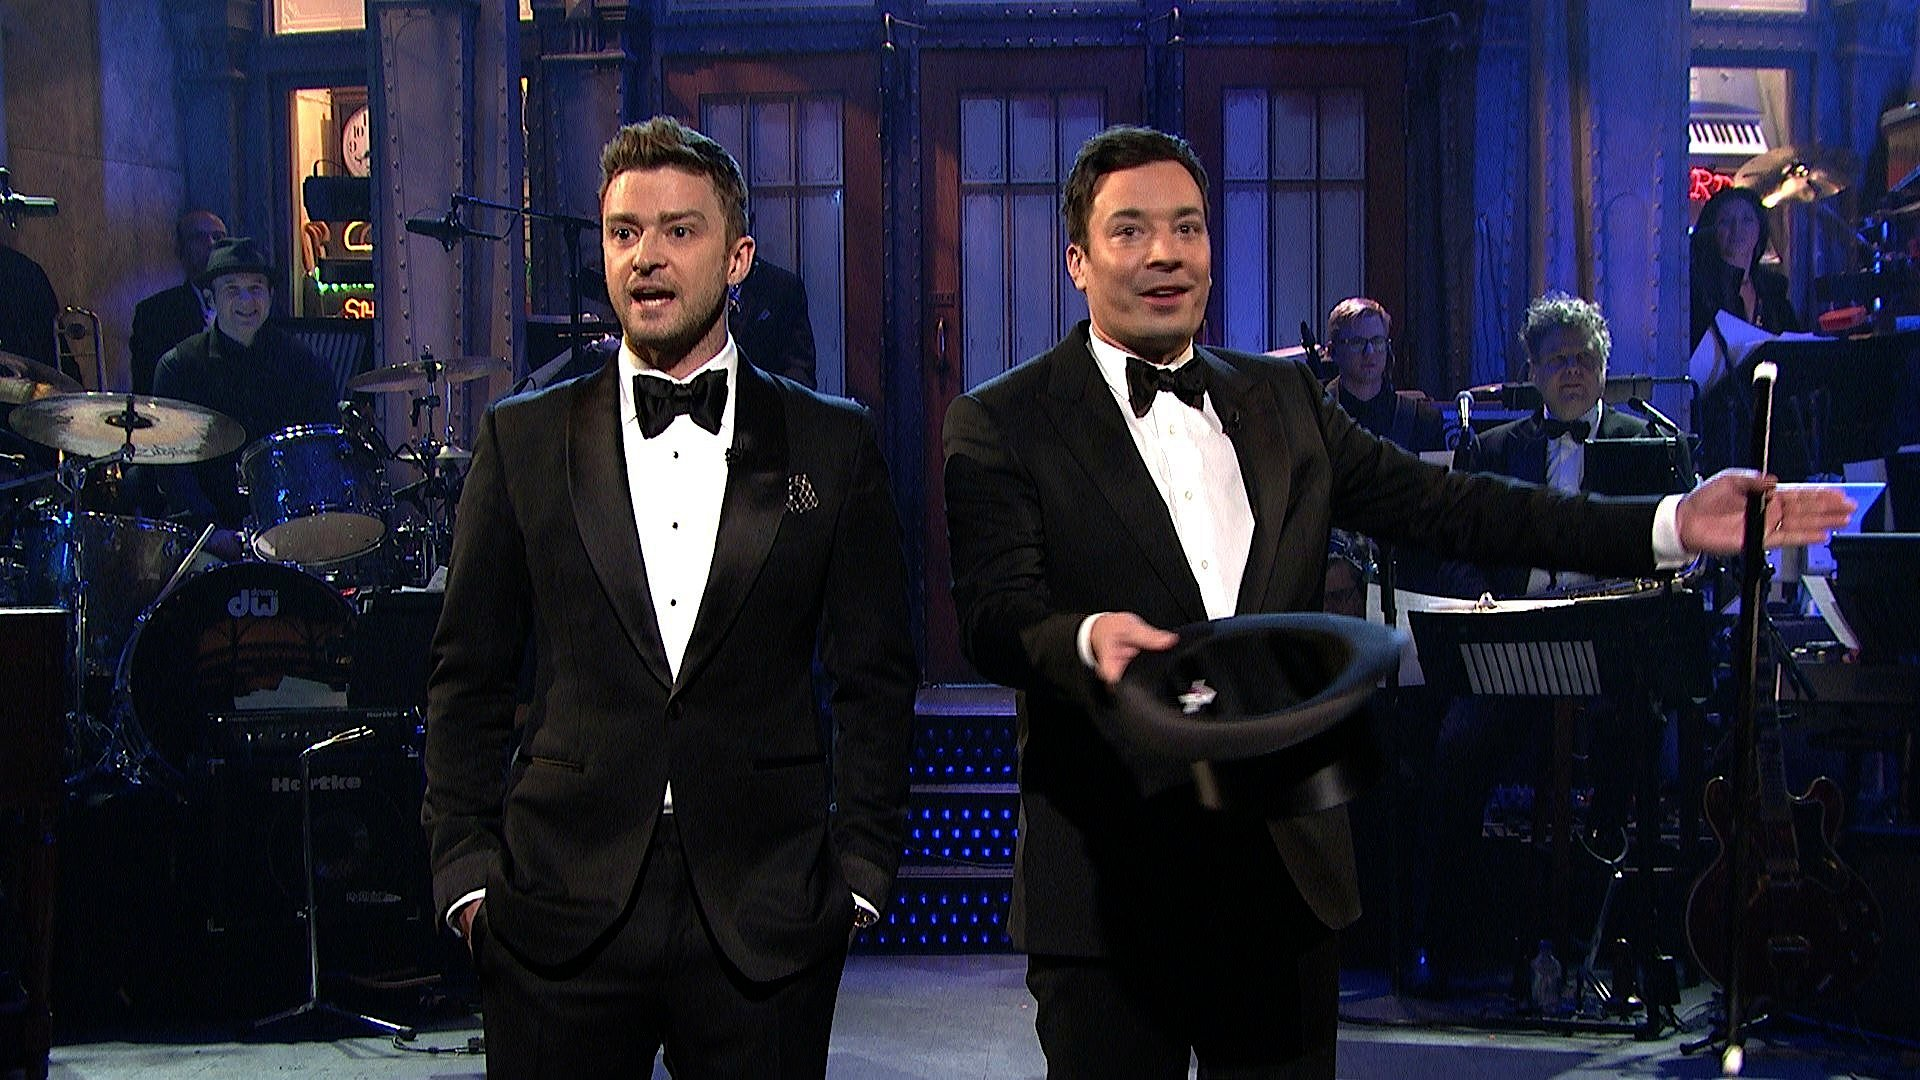 16 Best SNL images in 2019 | Hilarious, Snl jeopardy ...